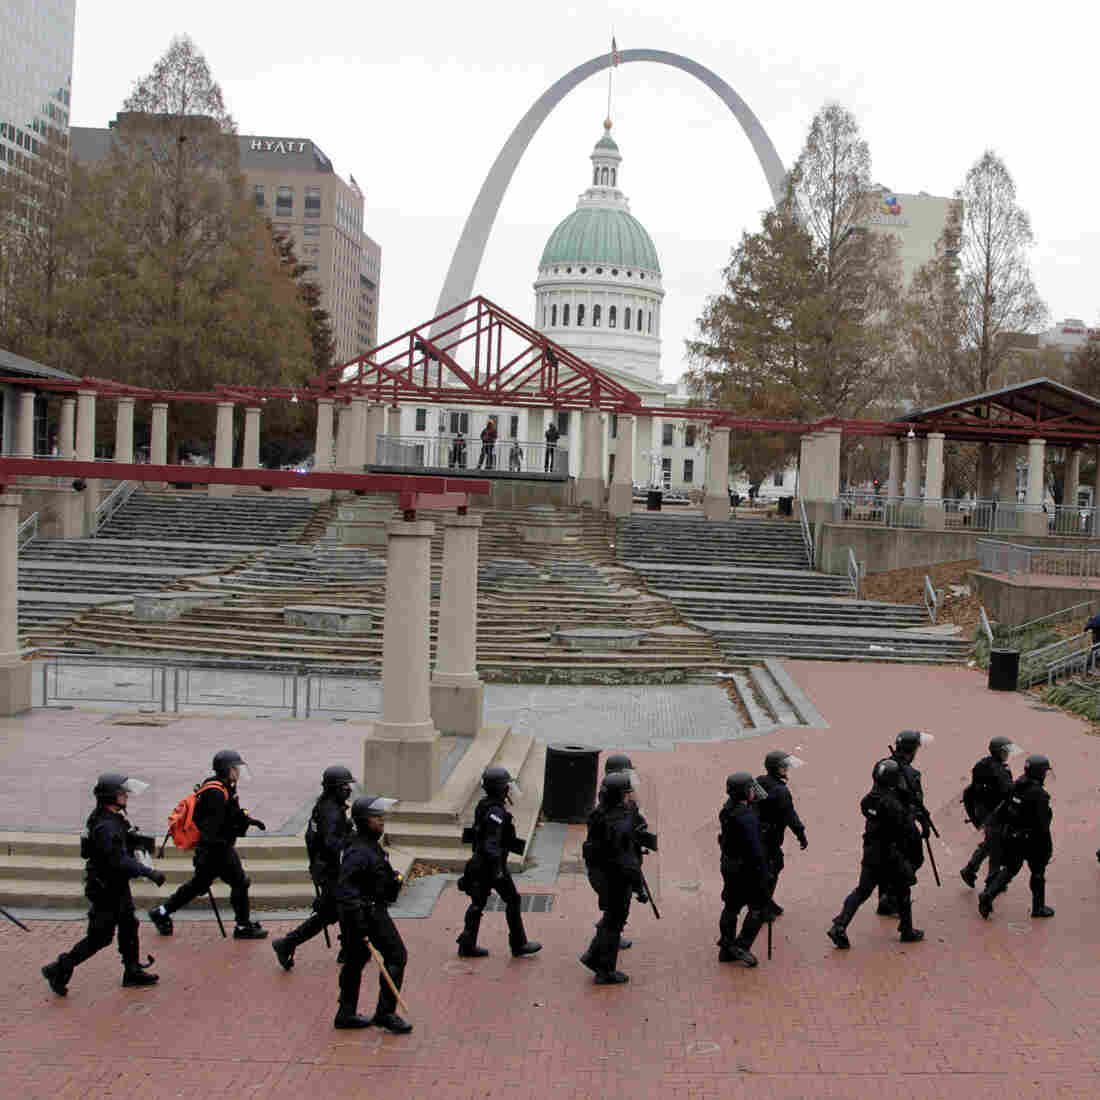 Officers wearing riot gear walk through a park in downtown St. Louis on Sunday.